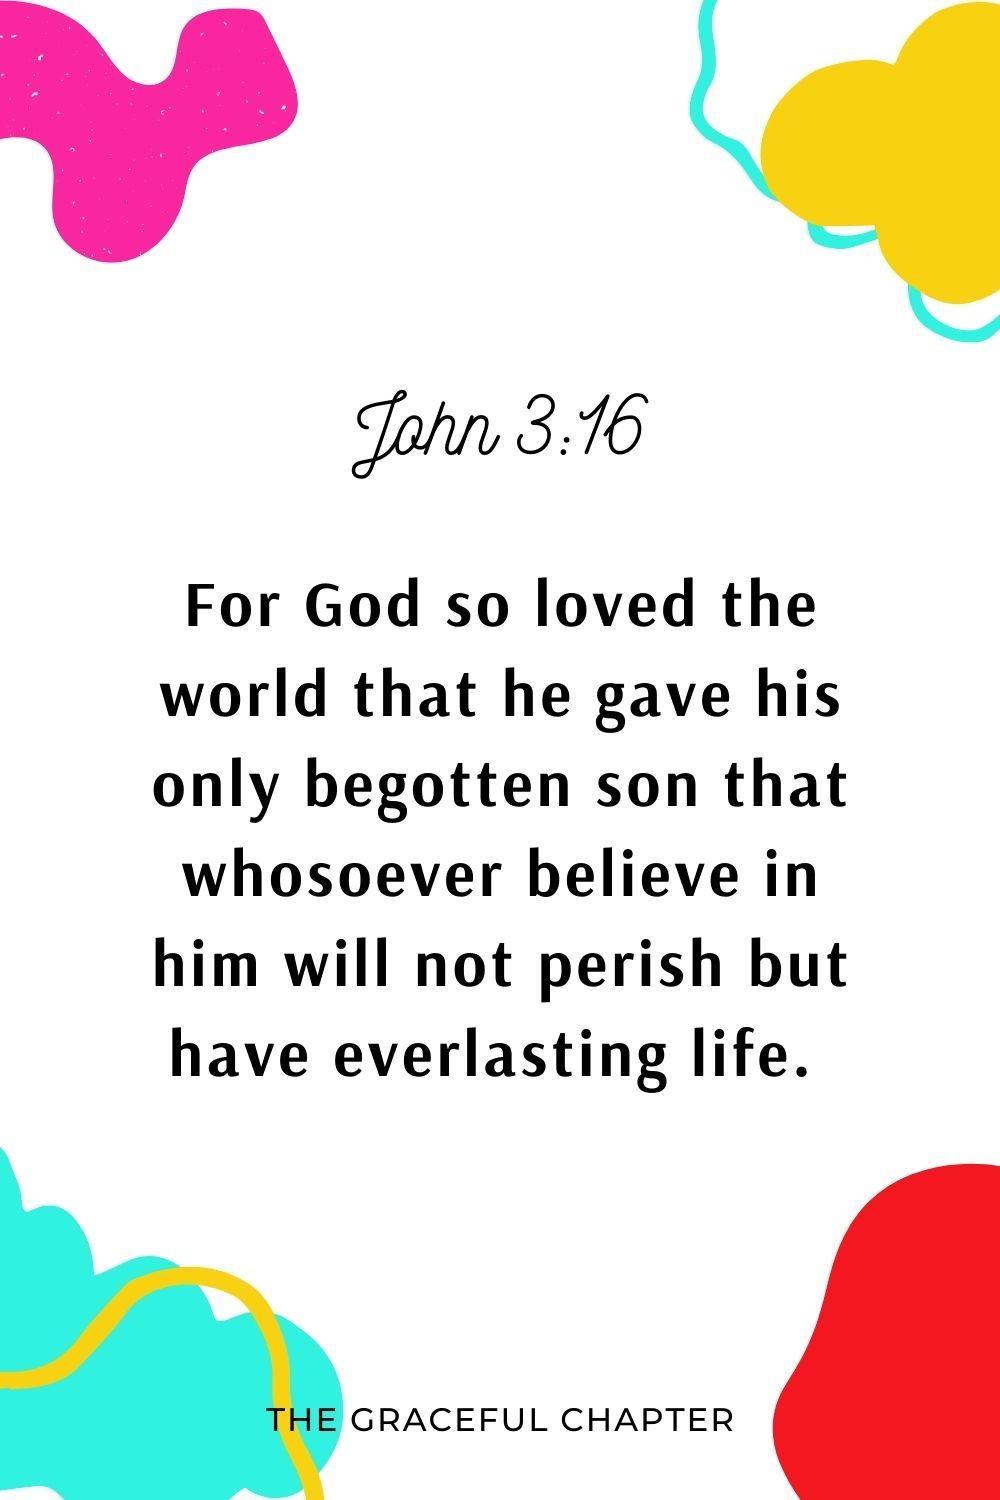 For God so love the world that he gave his only begotten son that whosoever believe in him will not perish but have everlasting life.  John 3:16